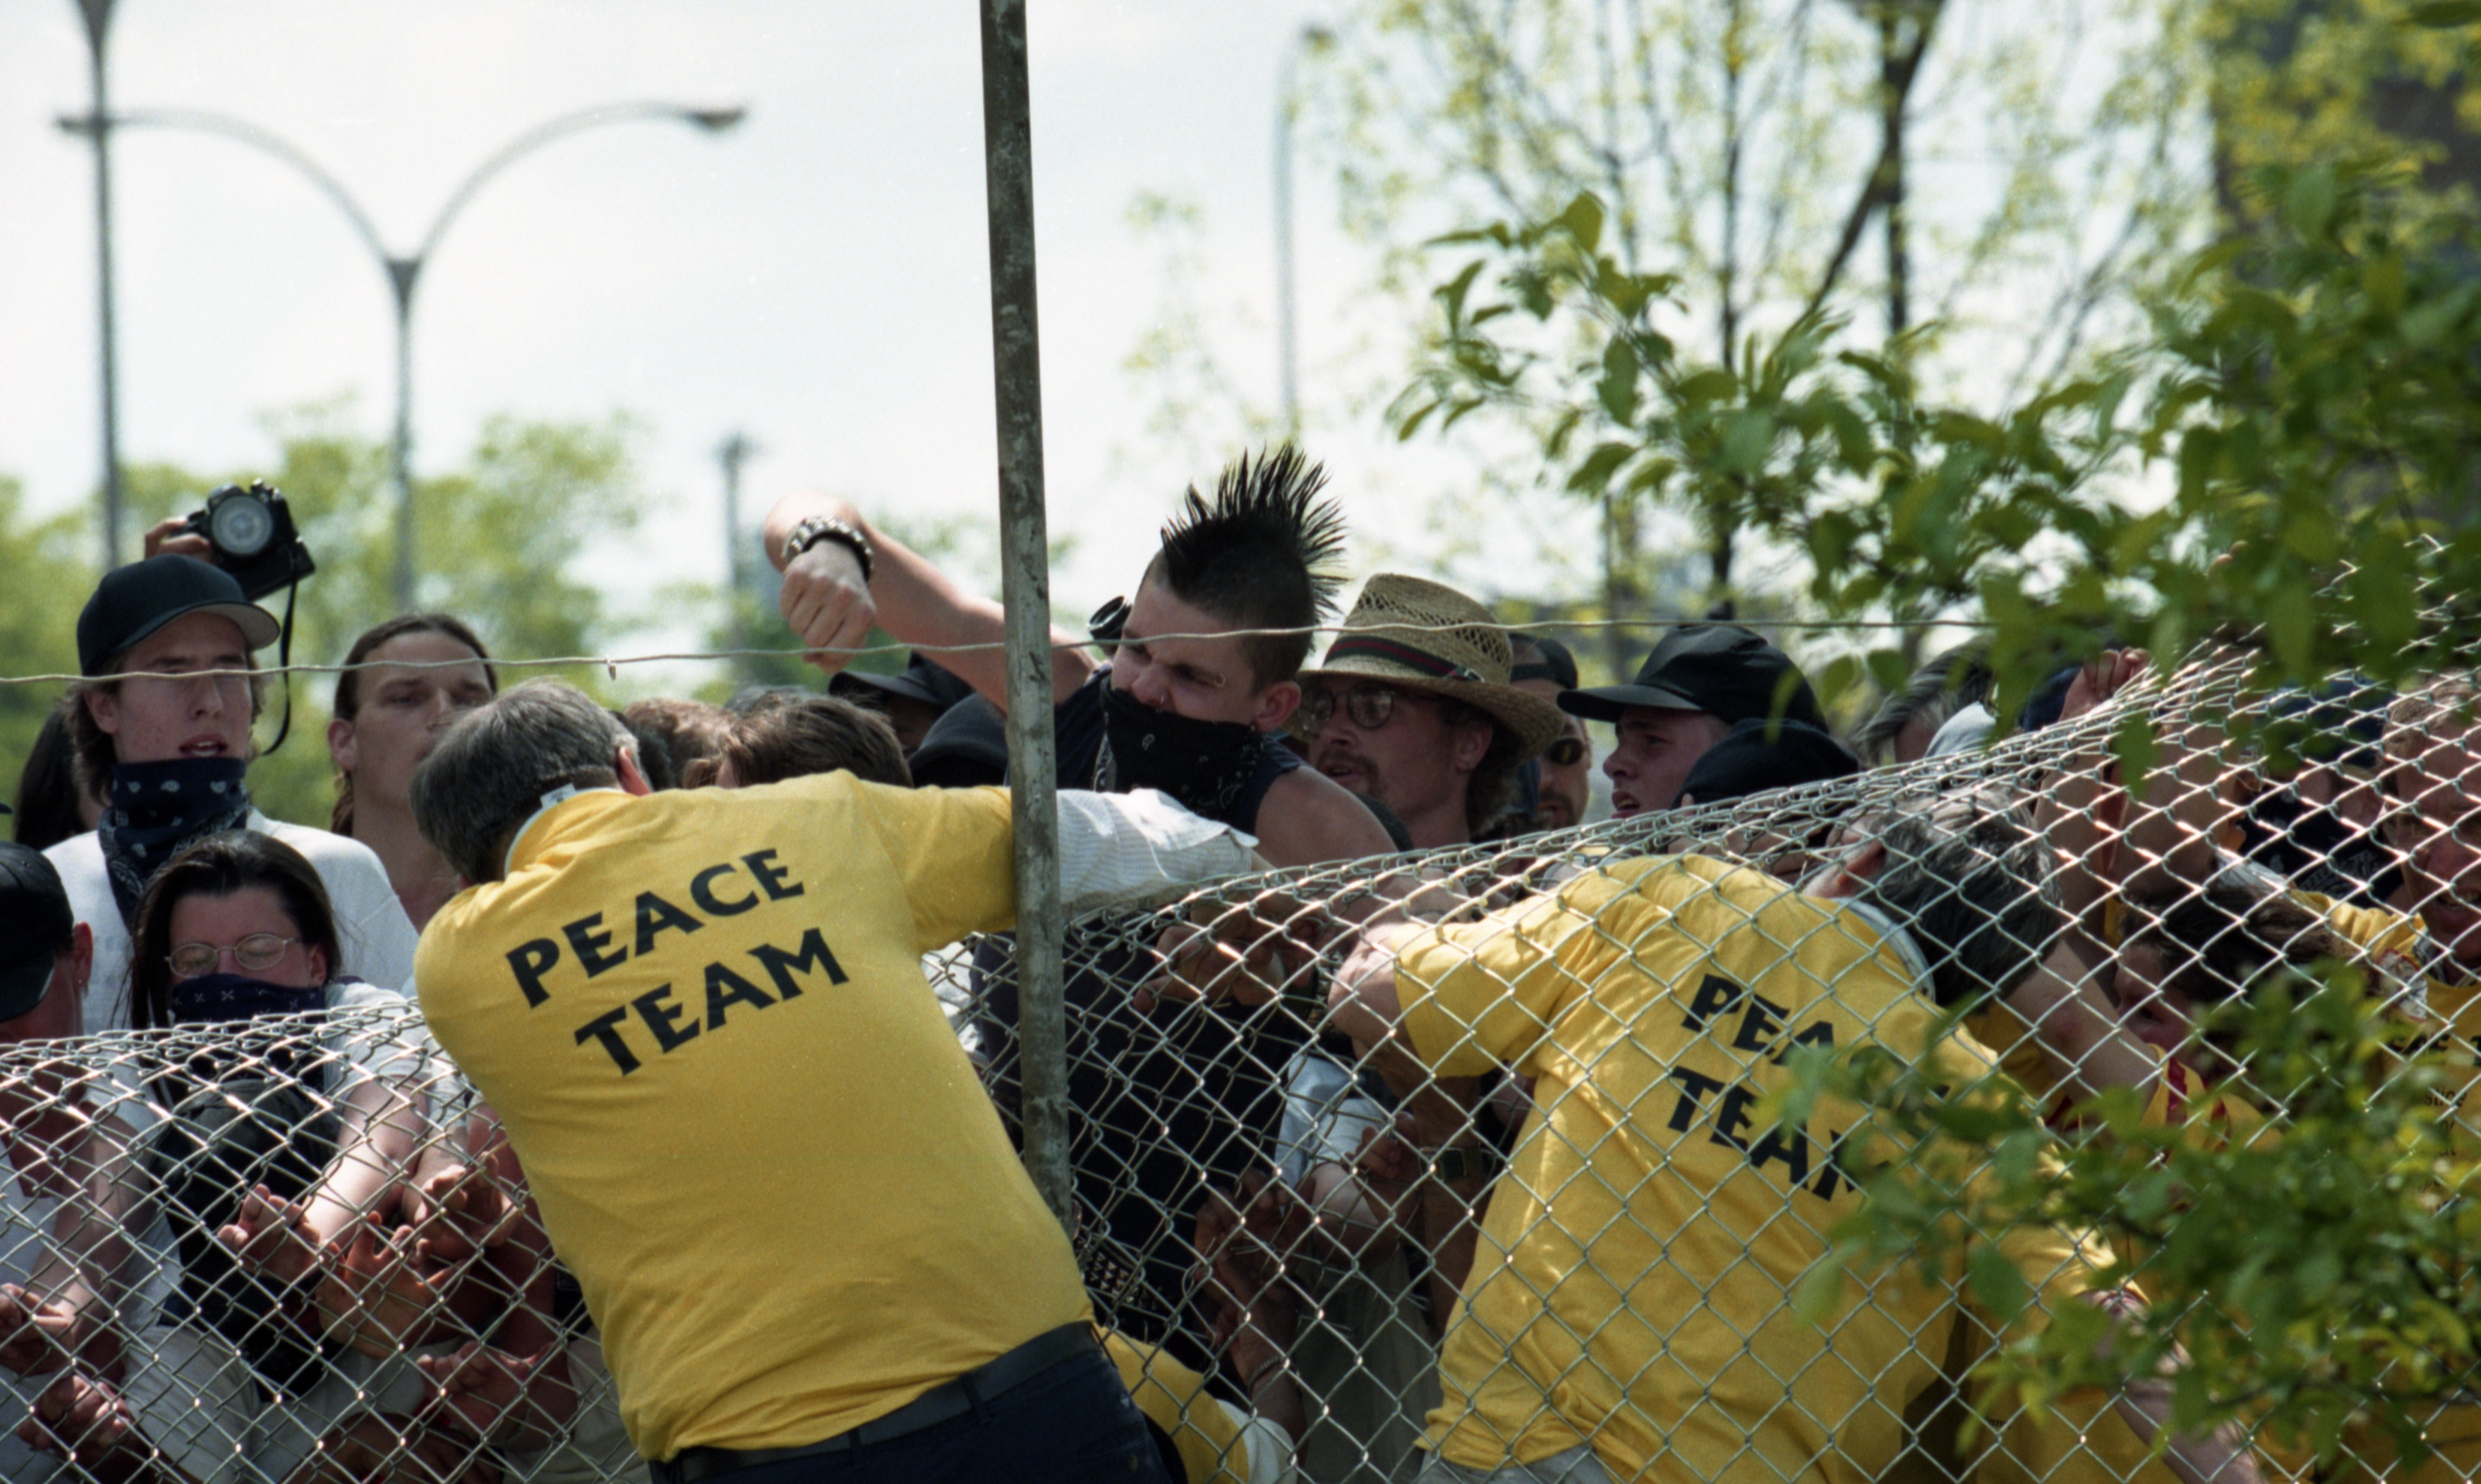 Peacekeepers' Team Members & KKK Rally Spectators Clash At Fence Around Larcom Building, May 1998 image